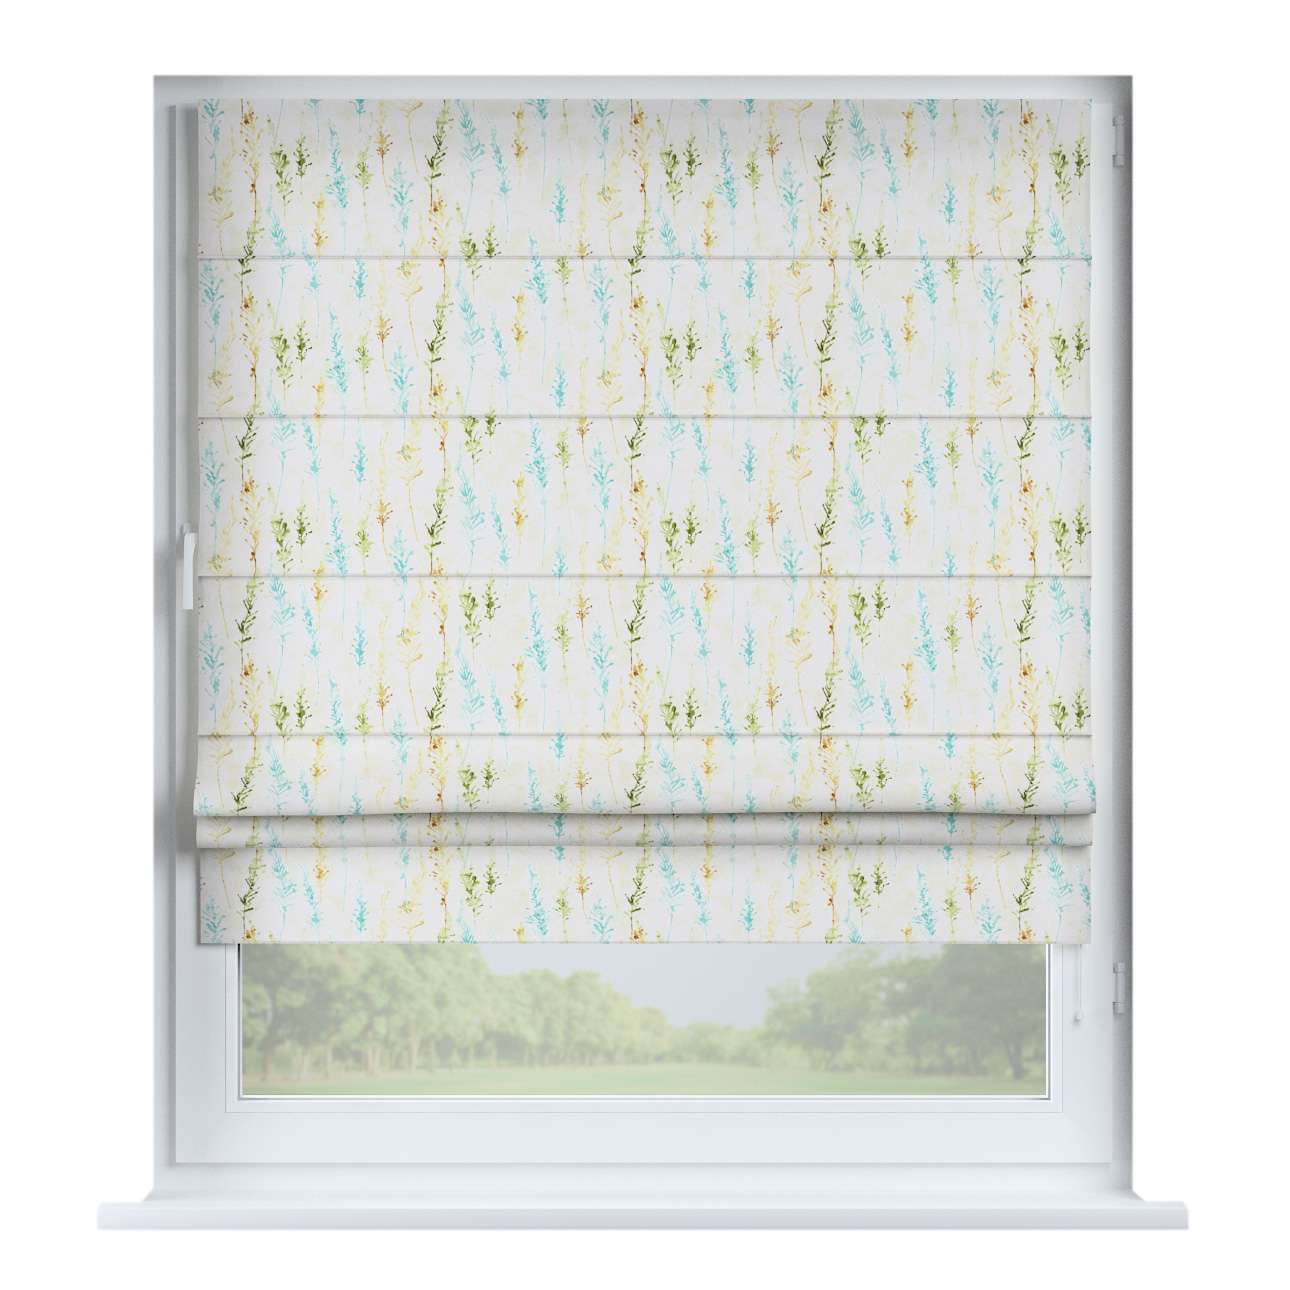 Padva roman blind  80 x 170 cm (31.5 x 67 inch) in collection Acapulco, fabric: 141-38